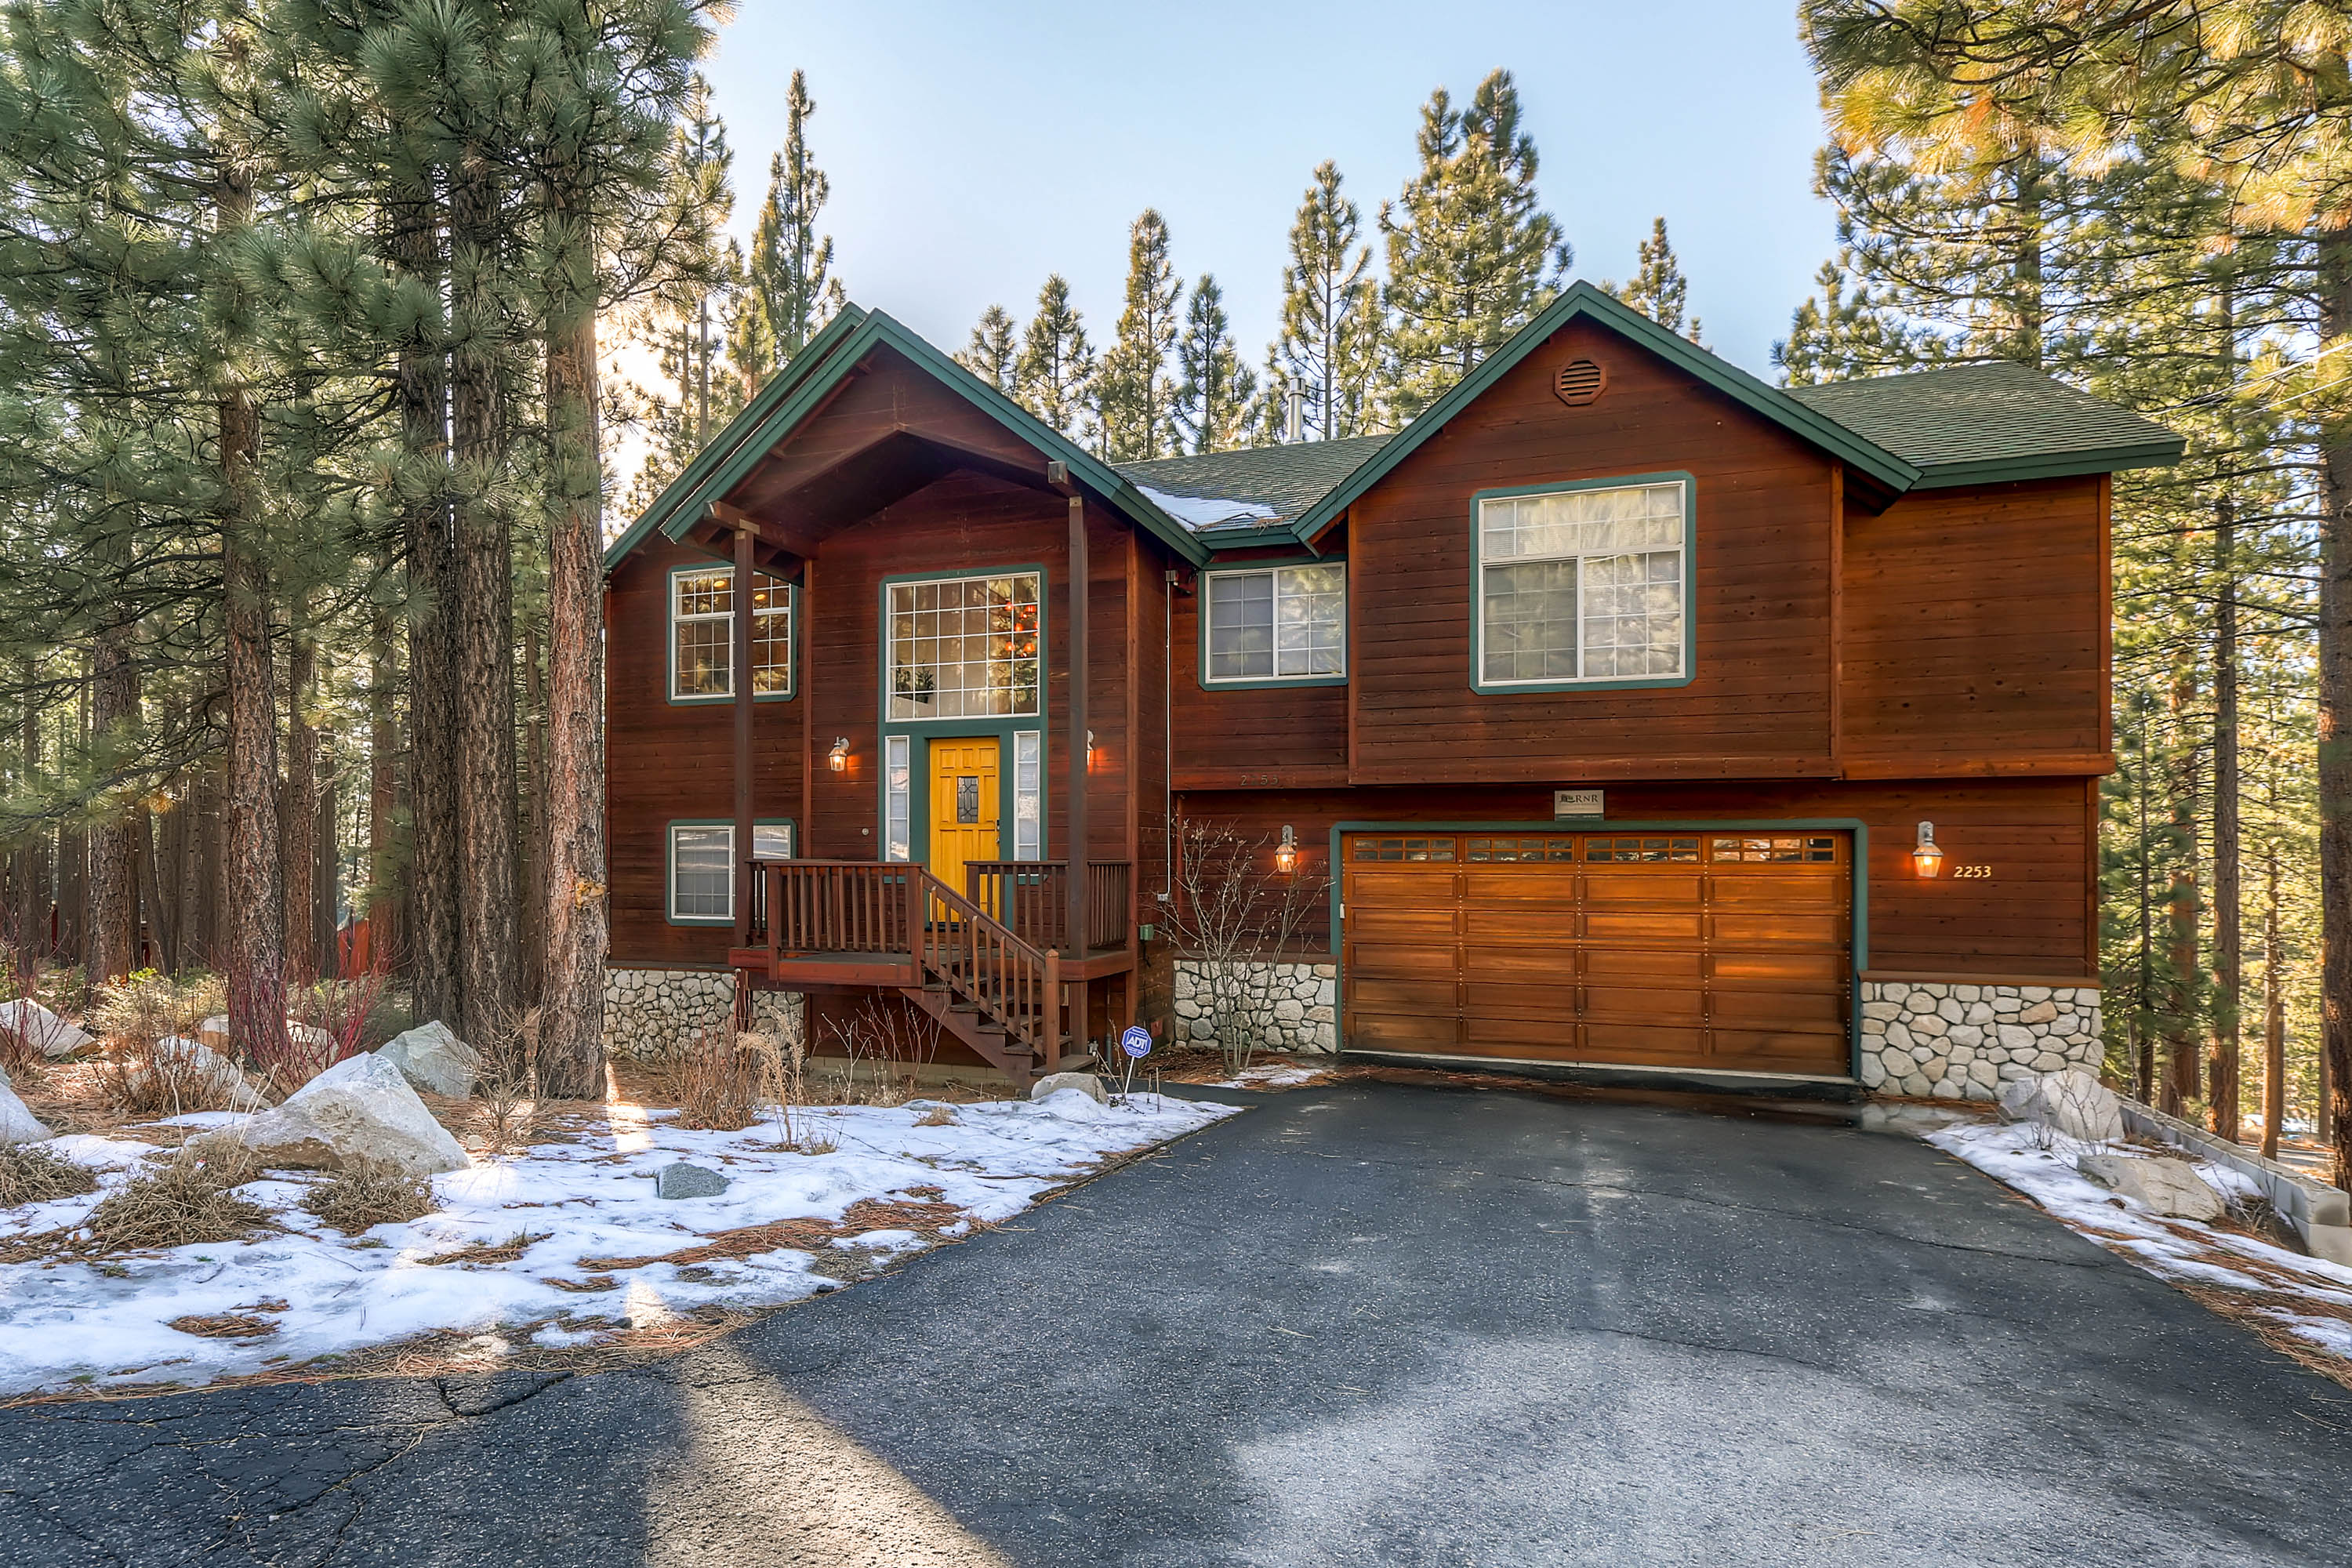 Lake Tahoe Lakefront Rentals Lake Tahoe Cabins For Rent: rent a cabin in lake tahoe ca